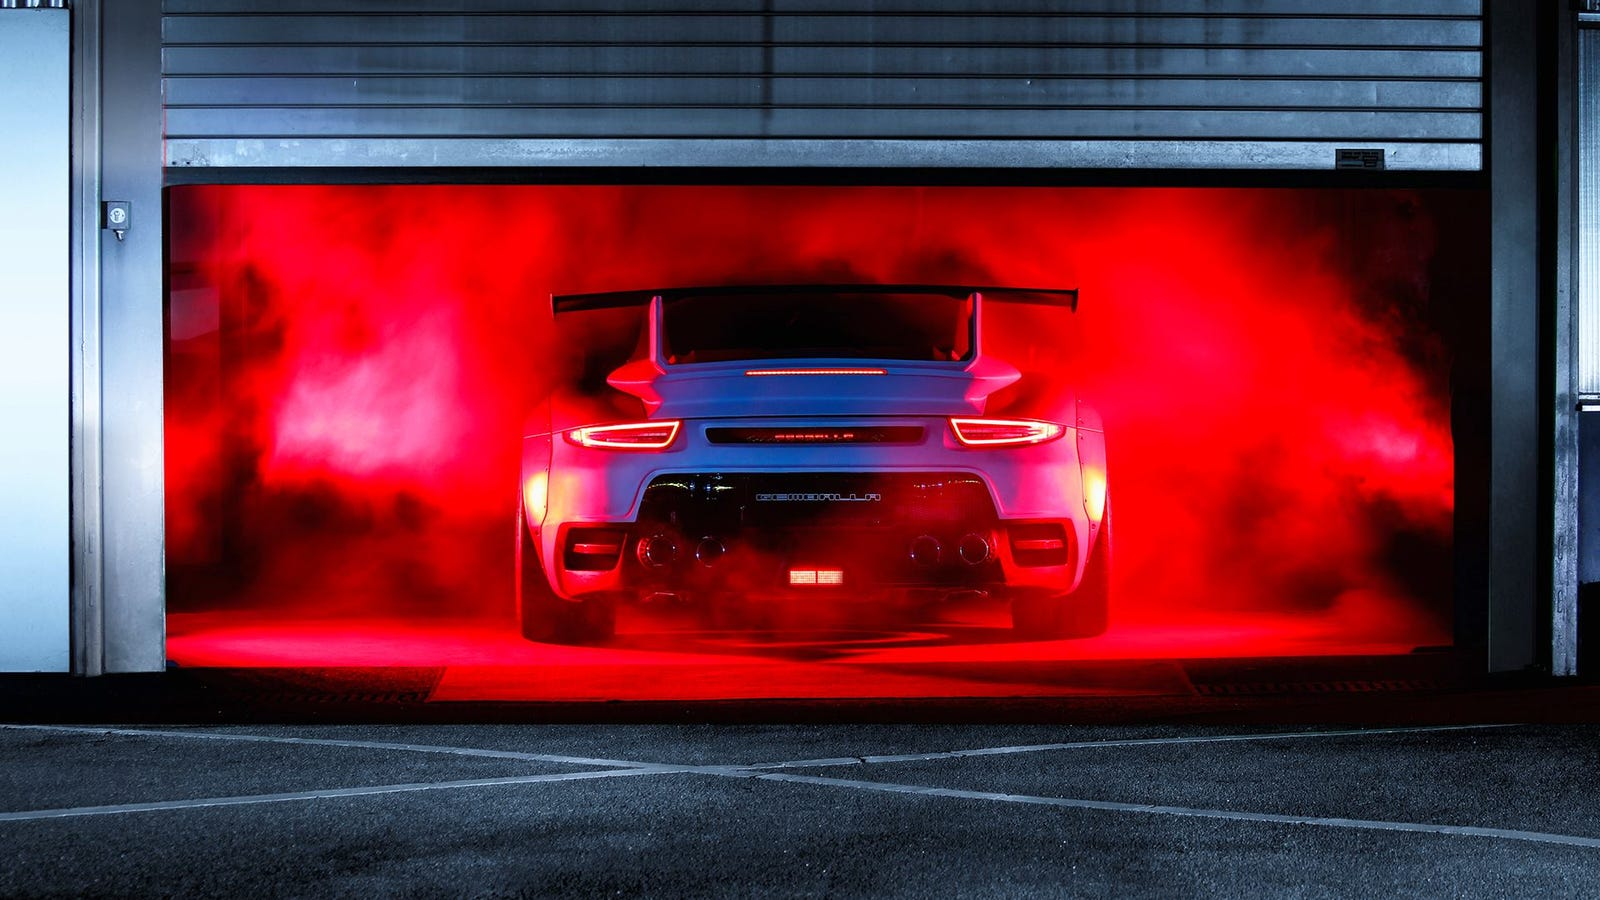 Gemballa has Always Stood for Unrestrained Excess, and this 818-Horsepower Monster Continues the Legacy - Jalopnik